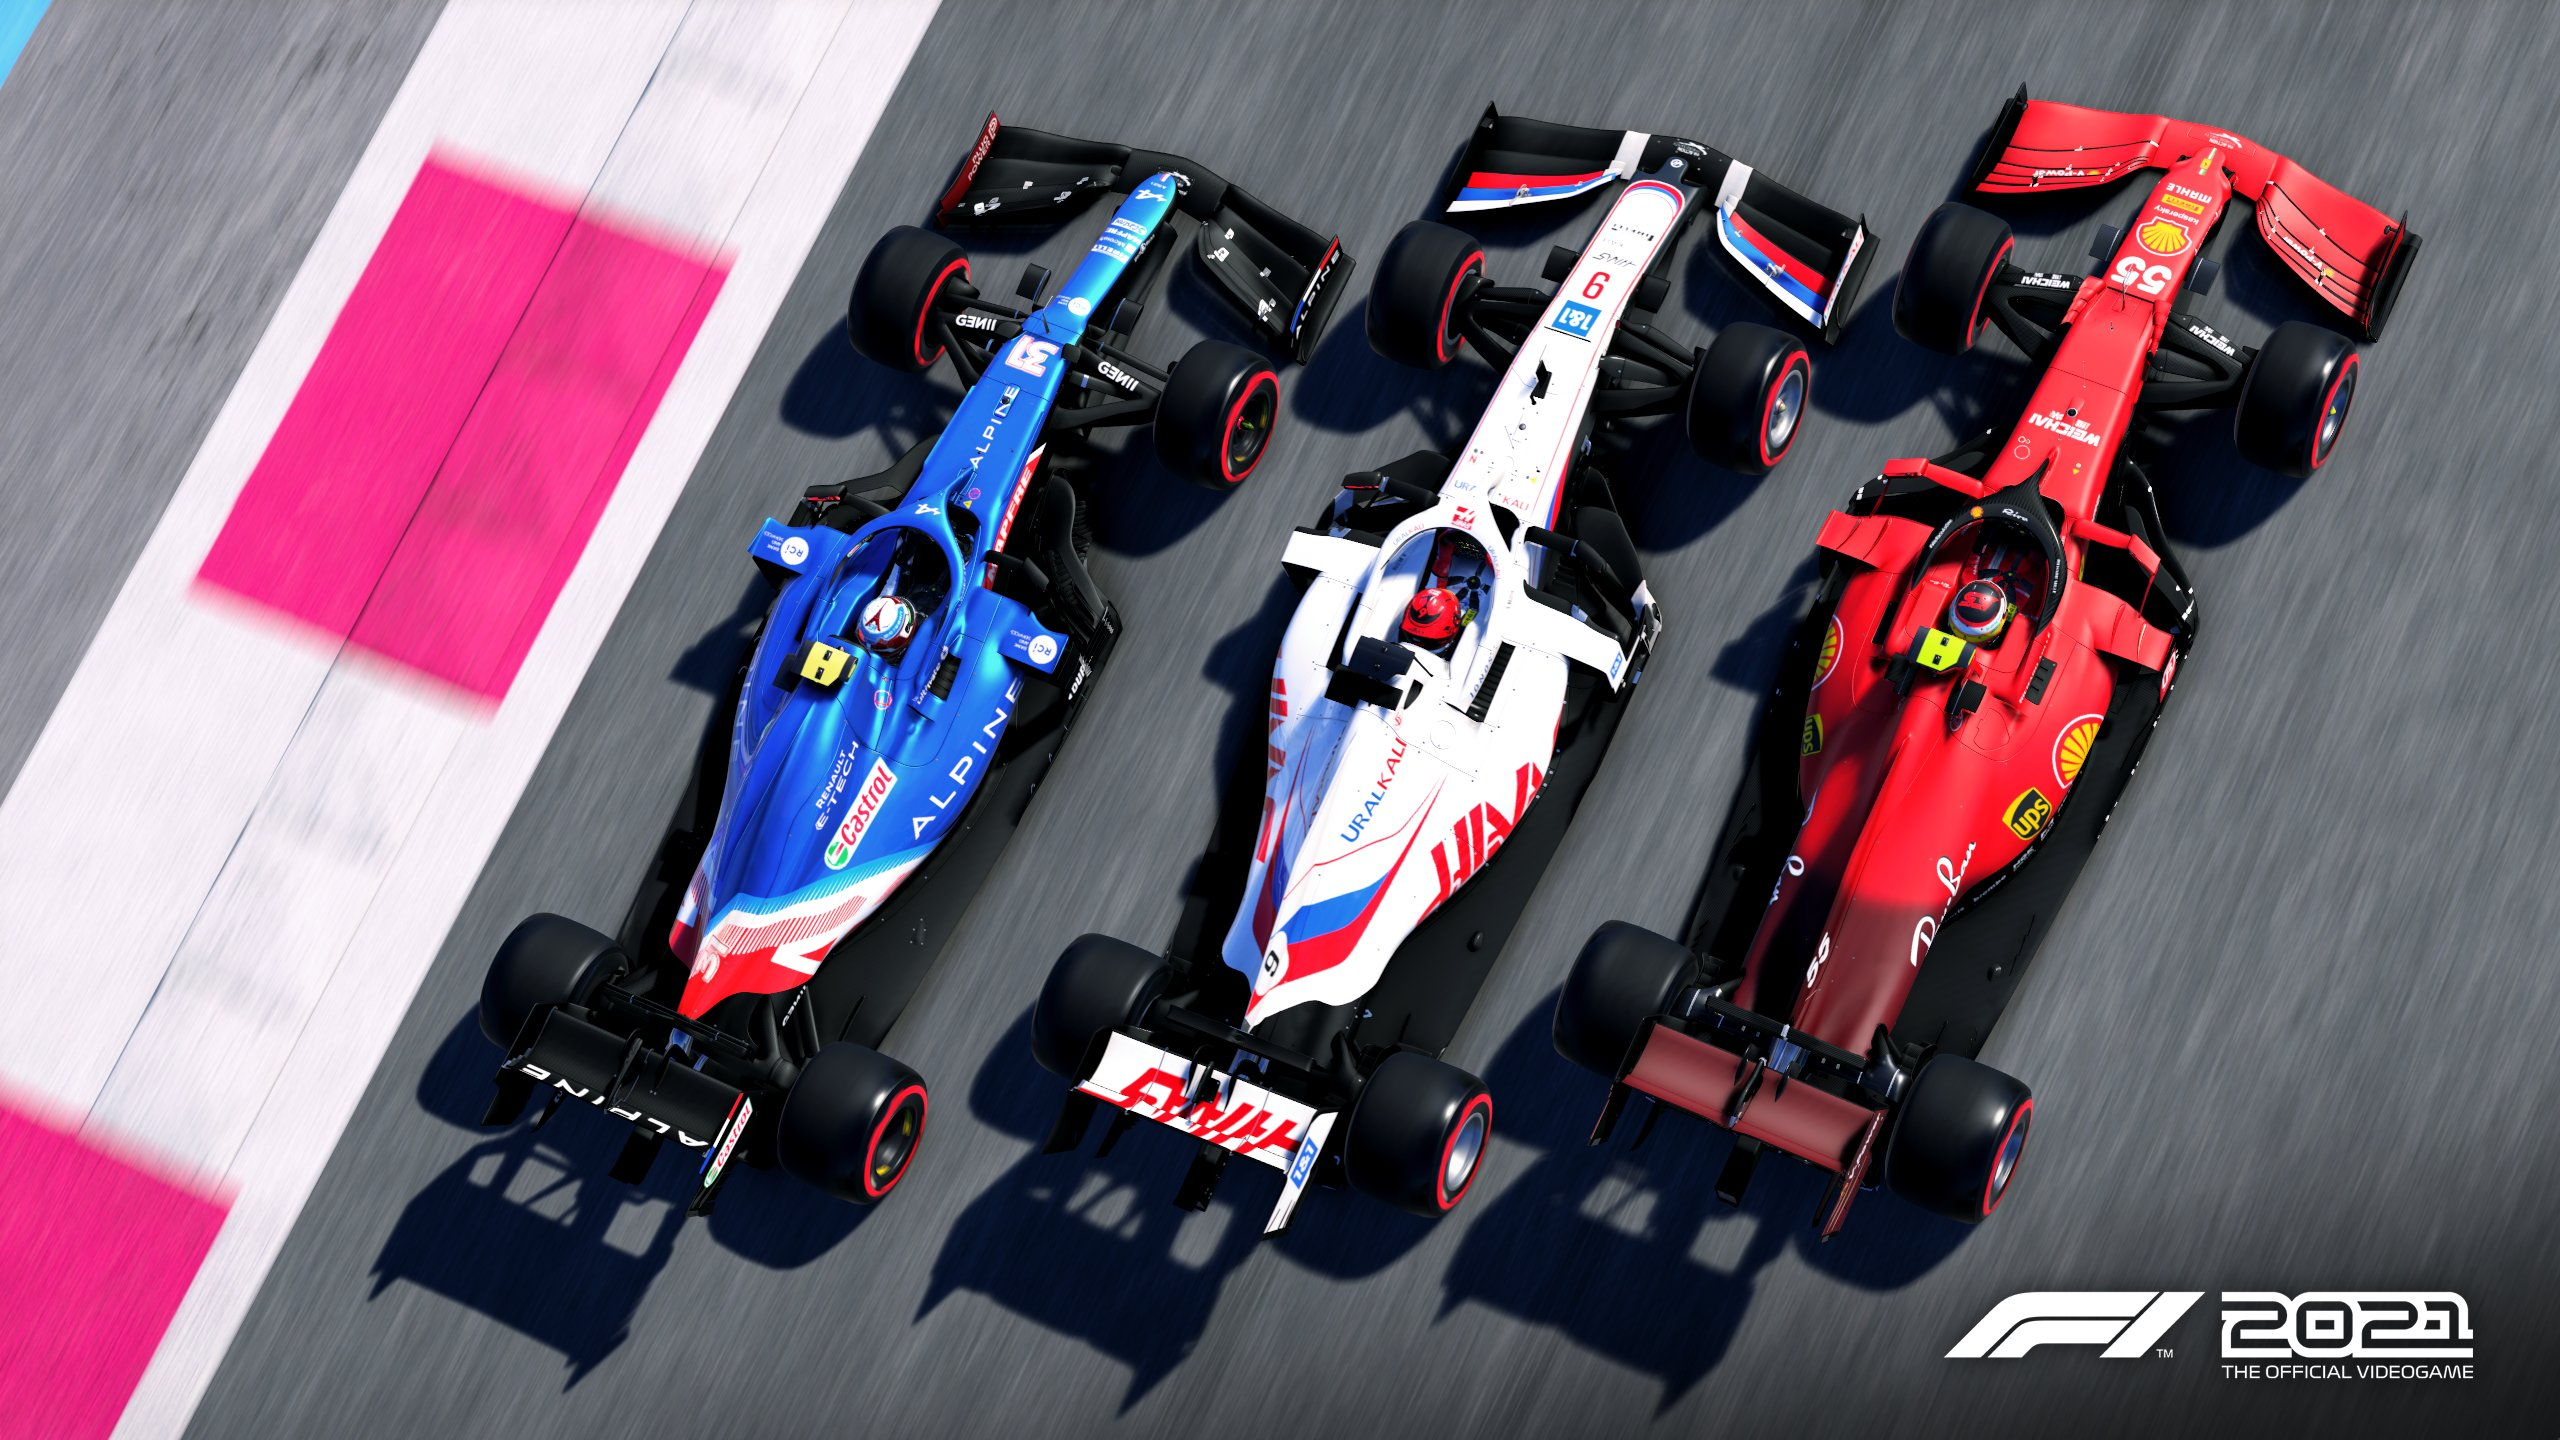 REALTIME delivers cinematics in record time on Codemasters' new F1 2021 game